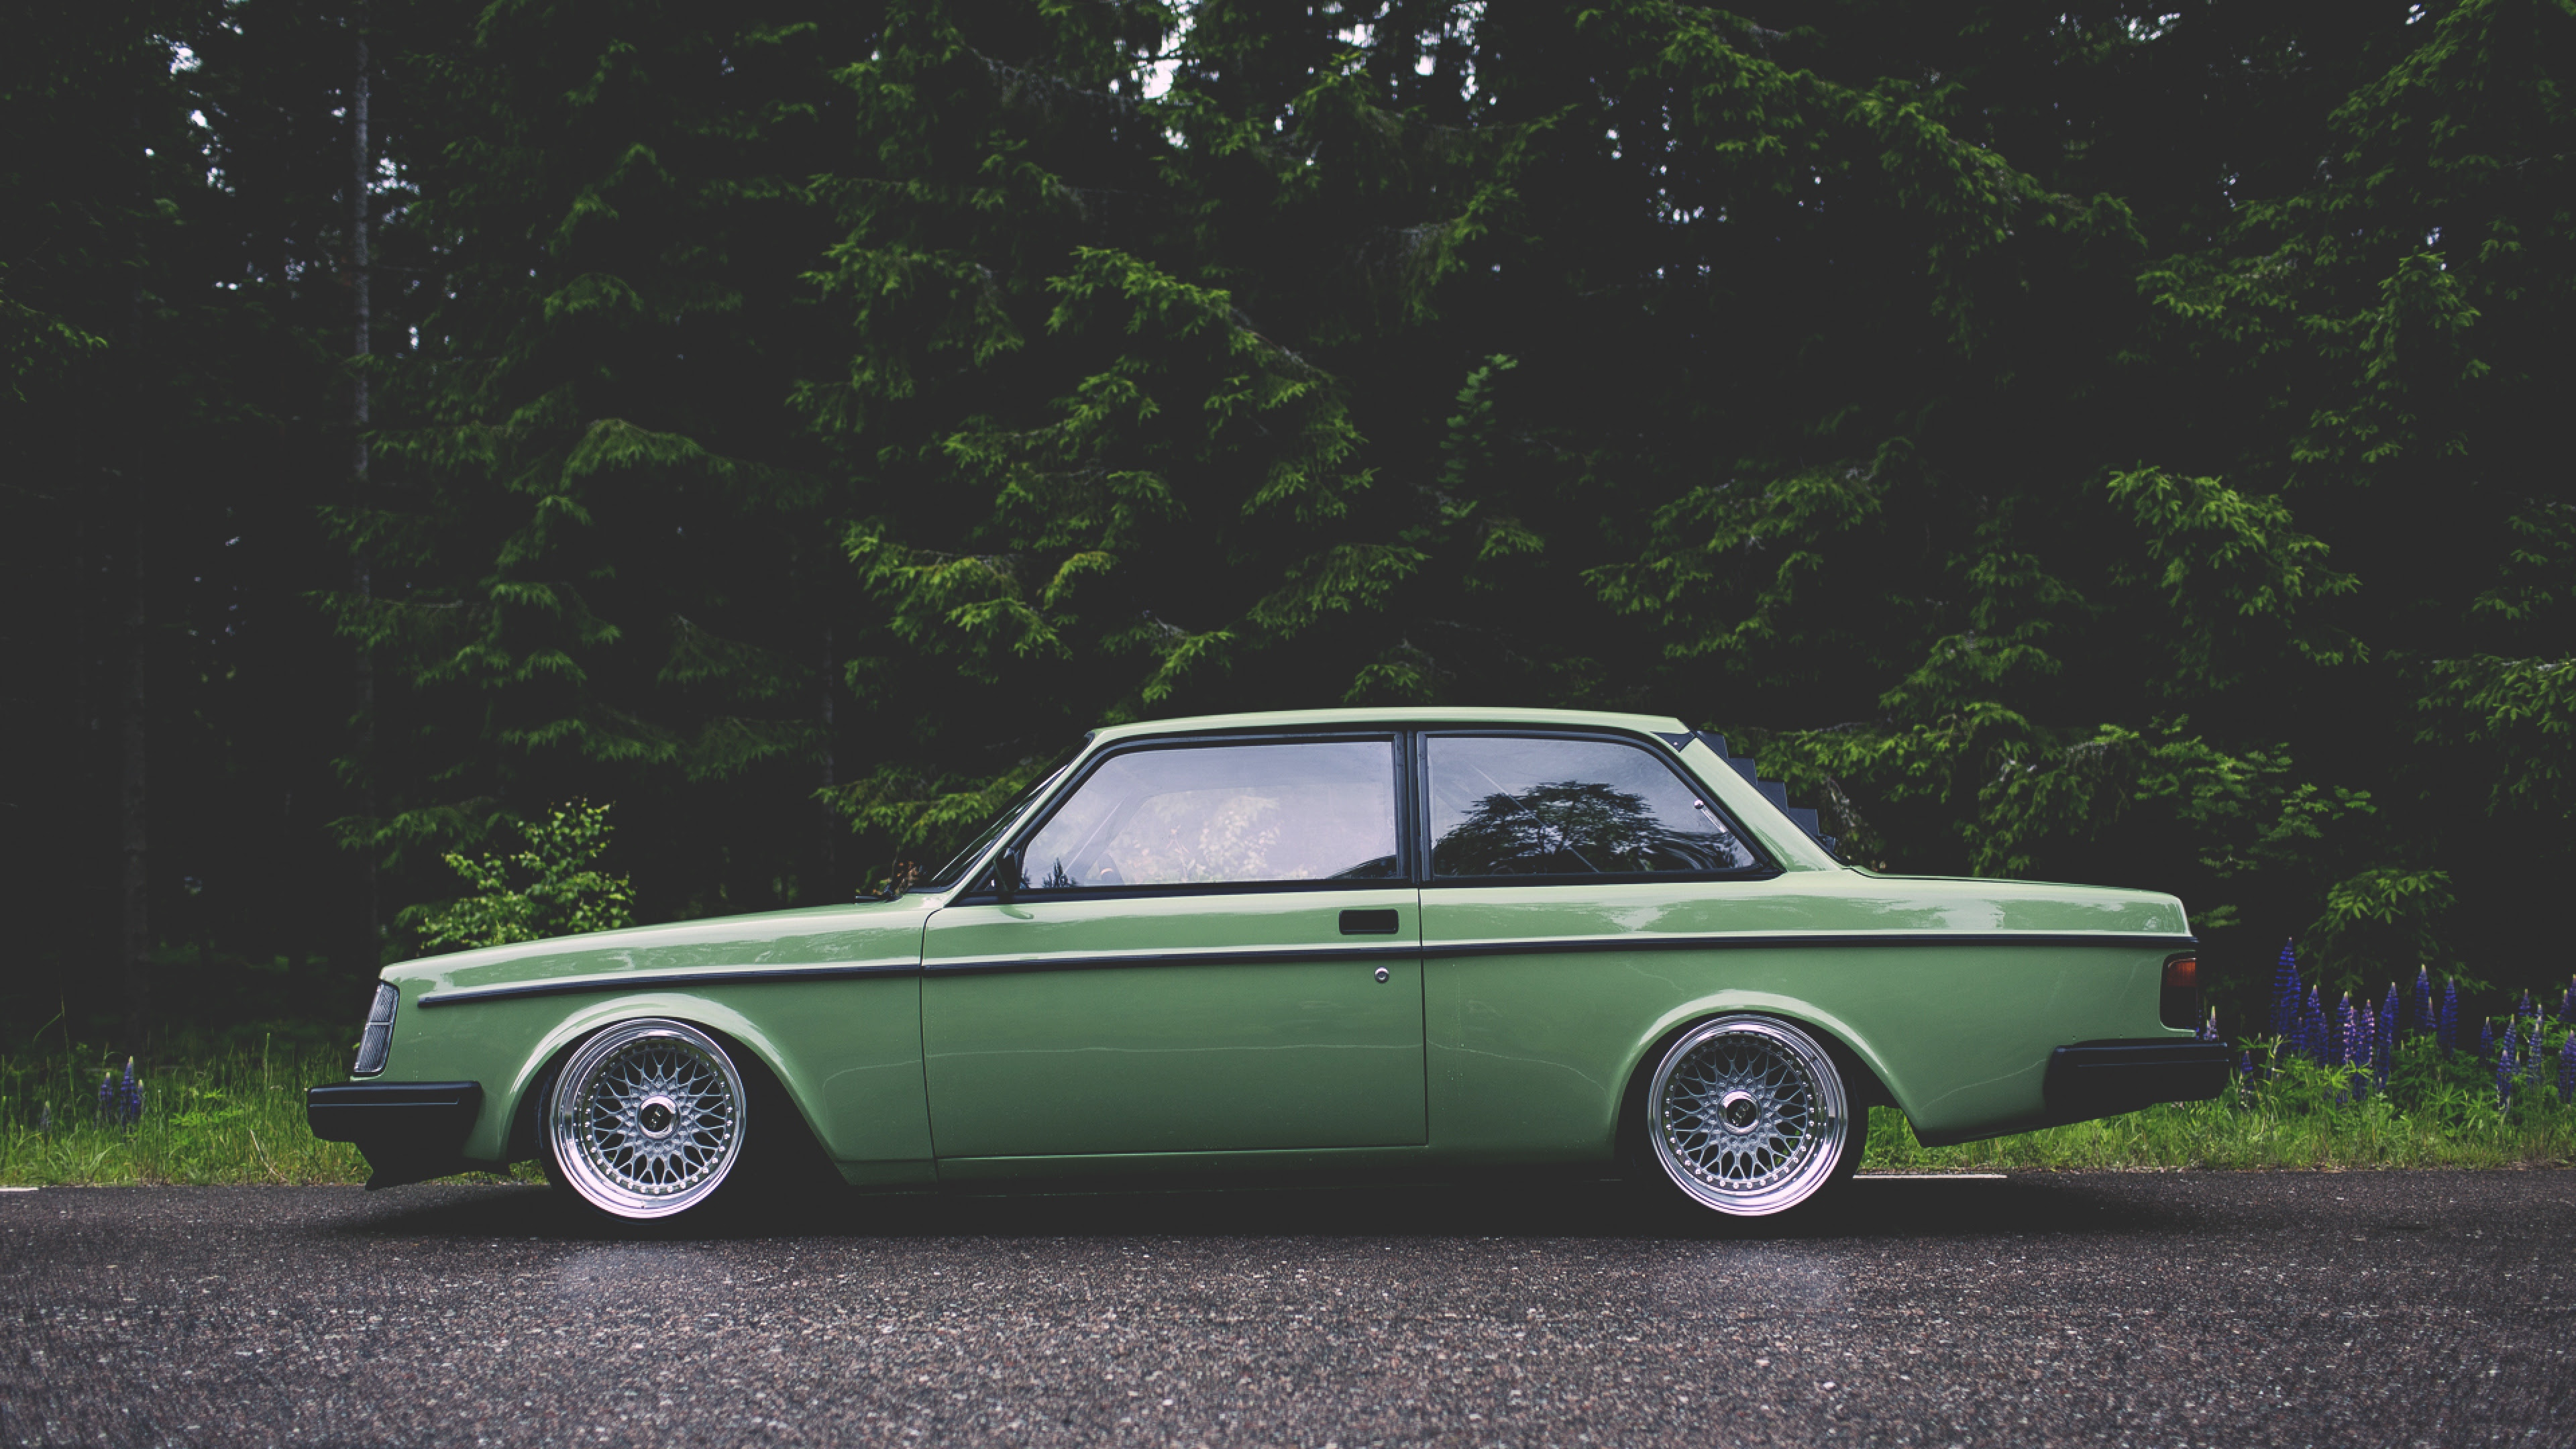 Volvo 242 Vintage, HD Cars, 4k Wallpapers, Images, Backgrounds, Photos and Pictures